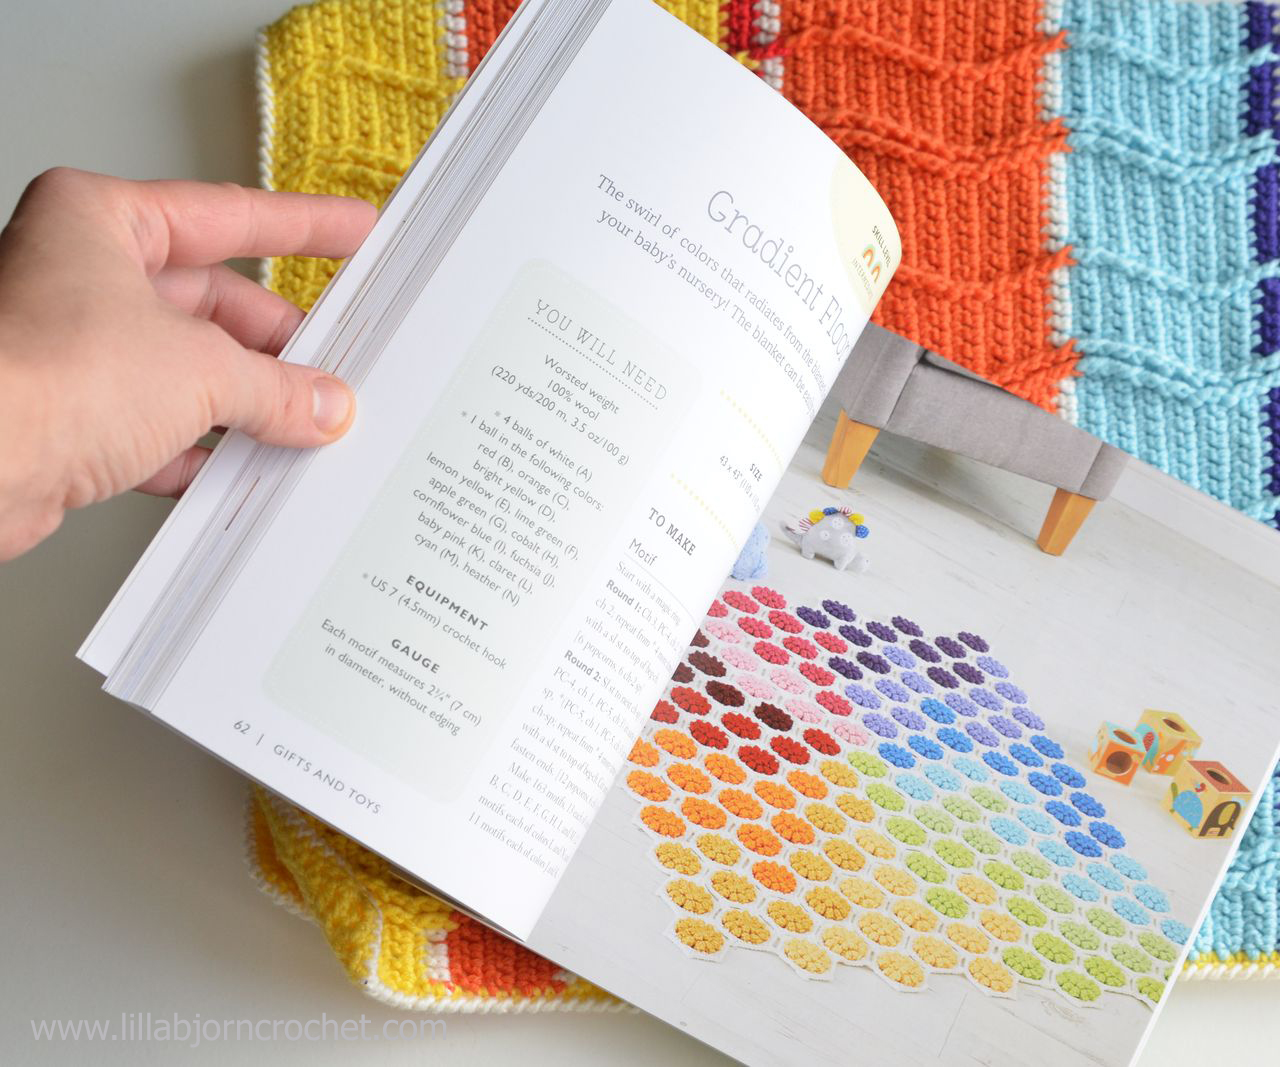 Bold Baby Crochet book with 30 modern and colorful patterns for babies. Review by Lilla Bjorn Crochet